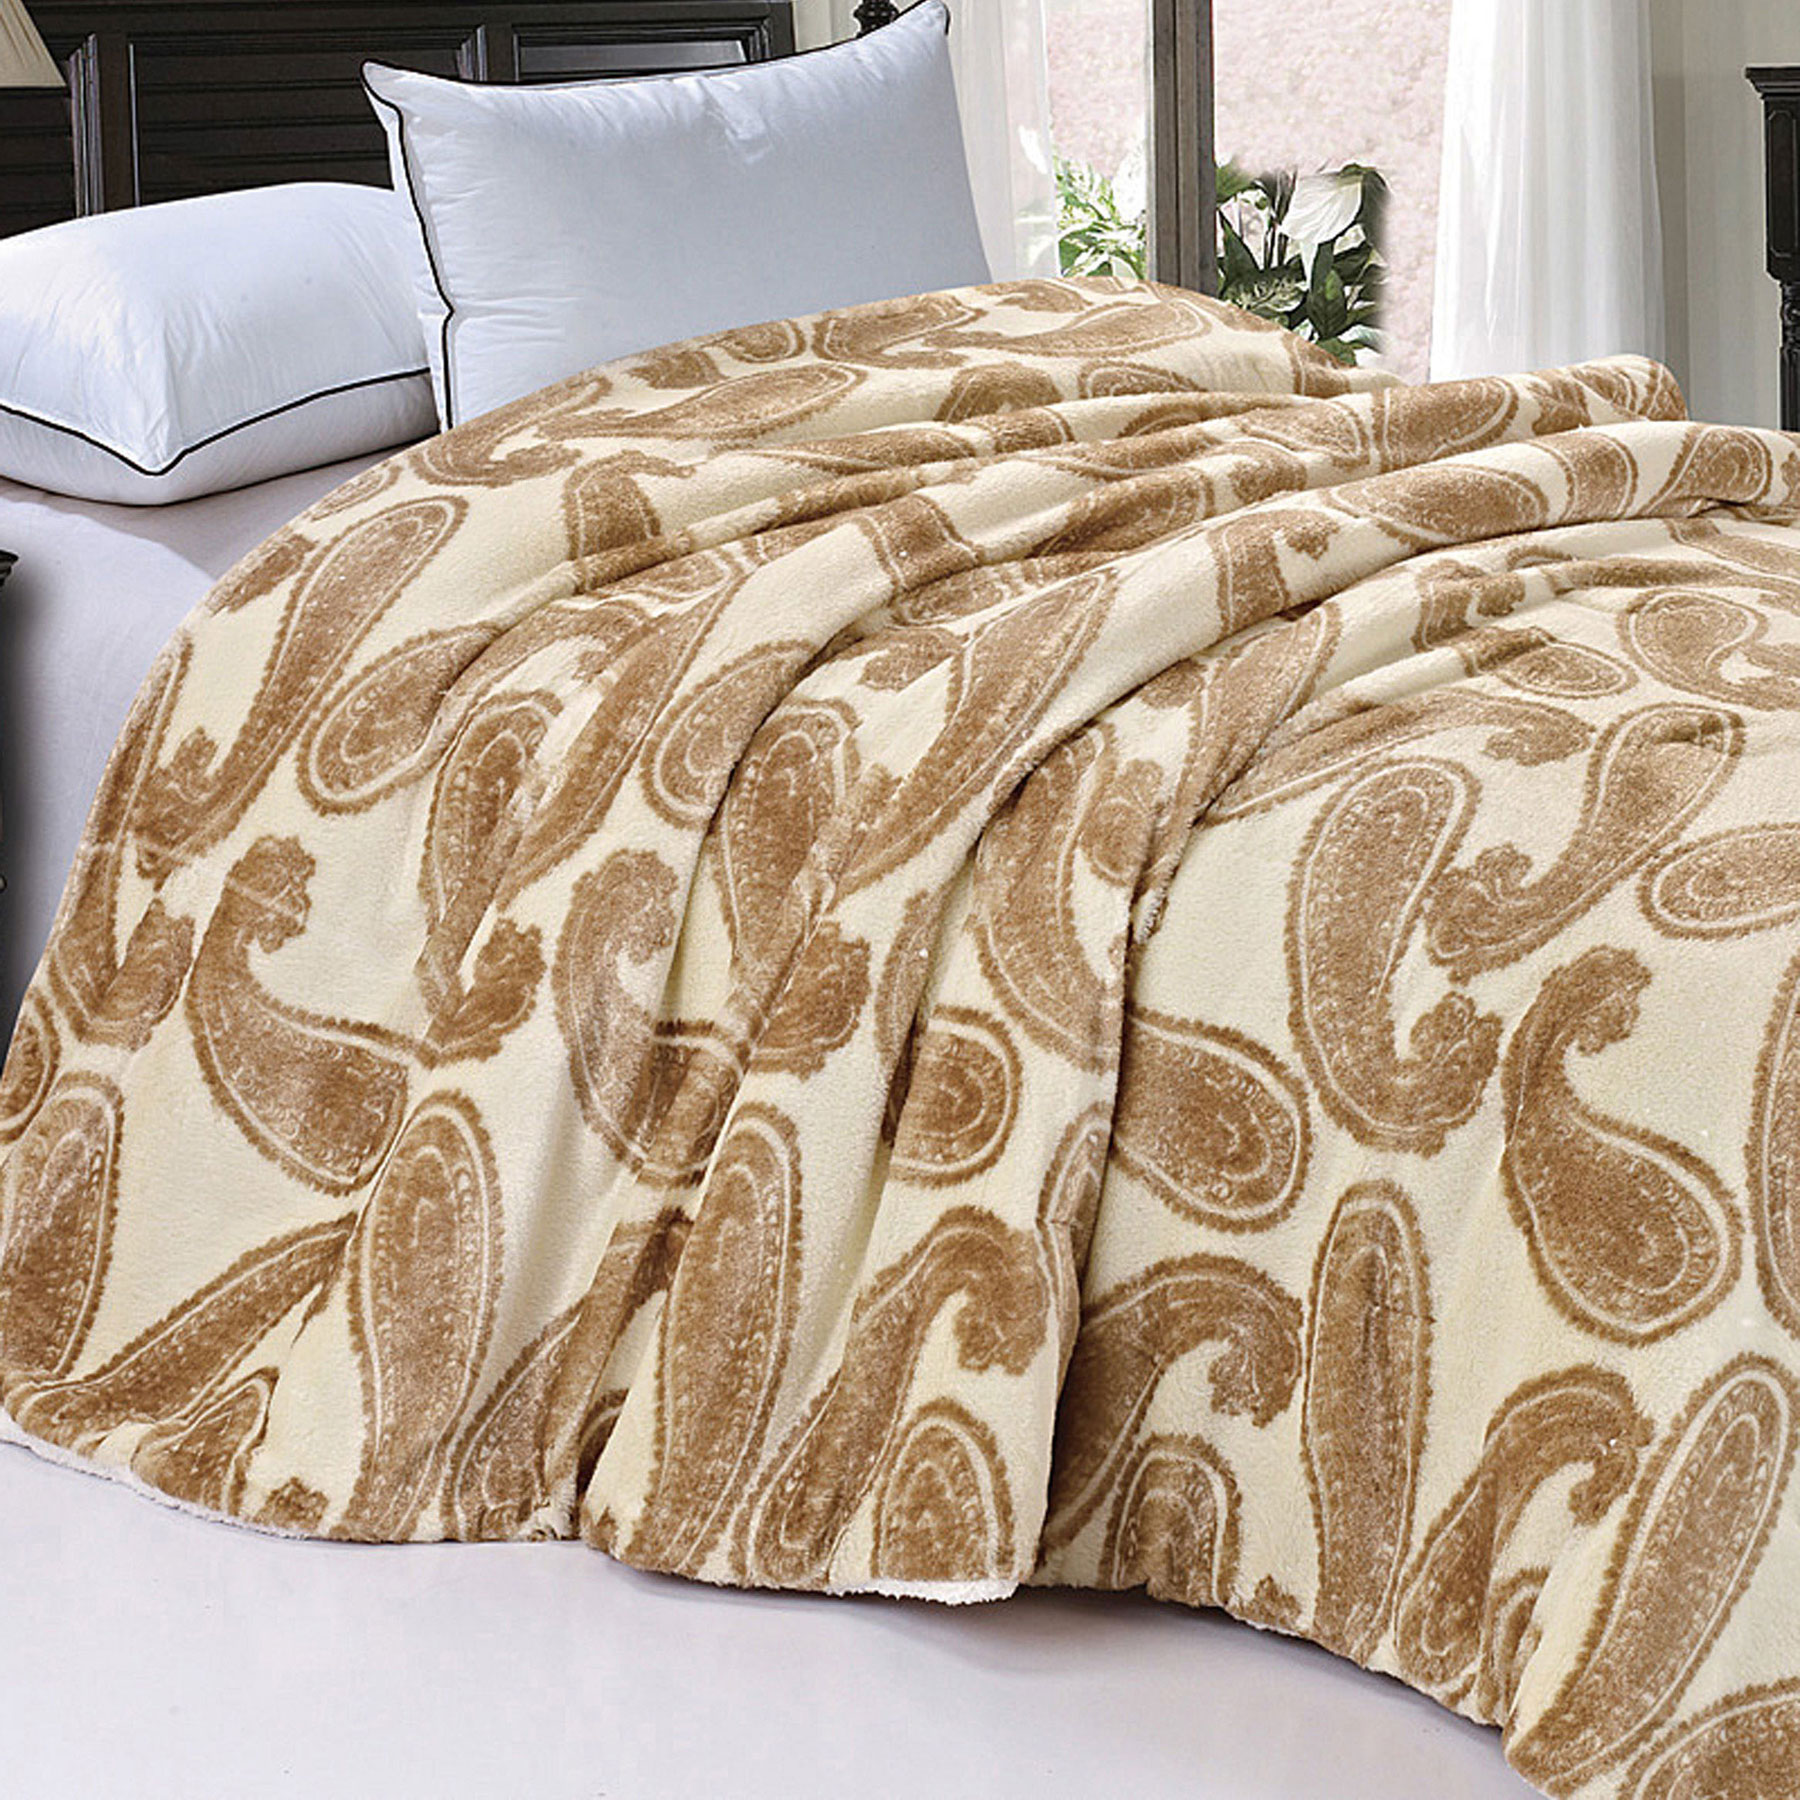 Click here to buy BOON Throw & Blanket Safari Animal Nature Faux Fur and Sherpa Queen Size Blanket by BNF Home.